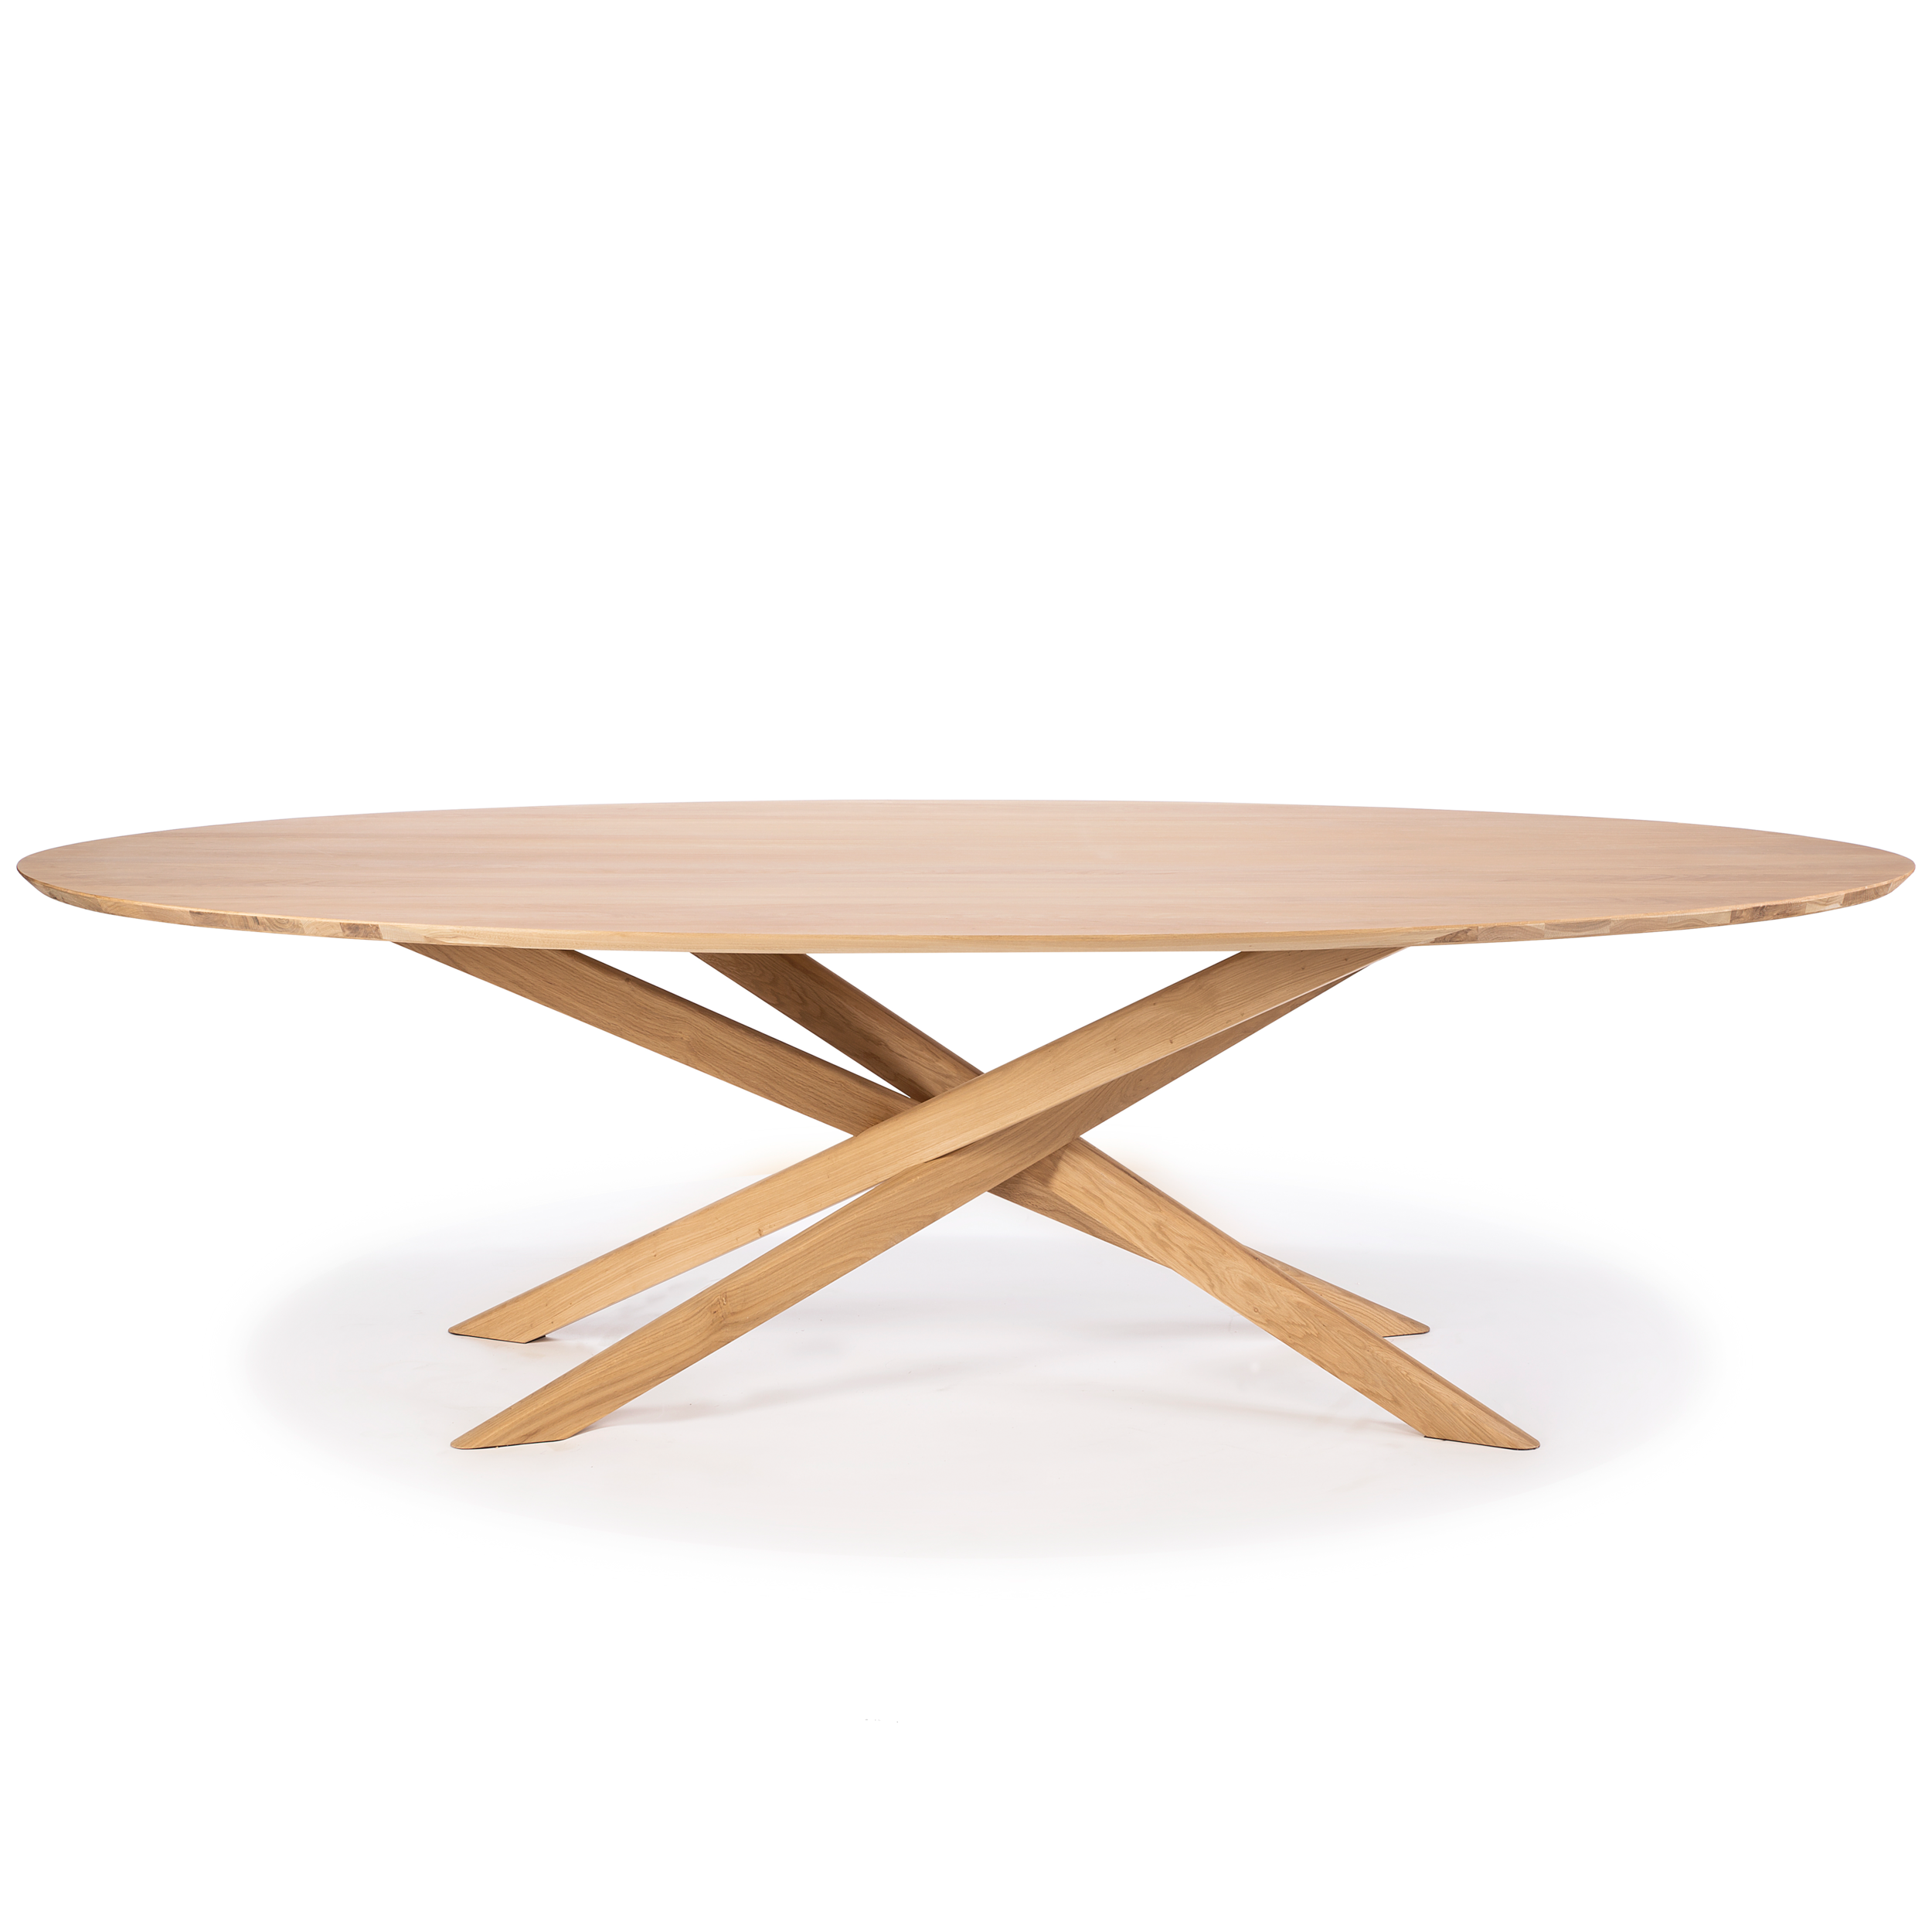 50181 Mikado Dining Table - oval (1).jpg.png